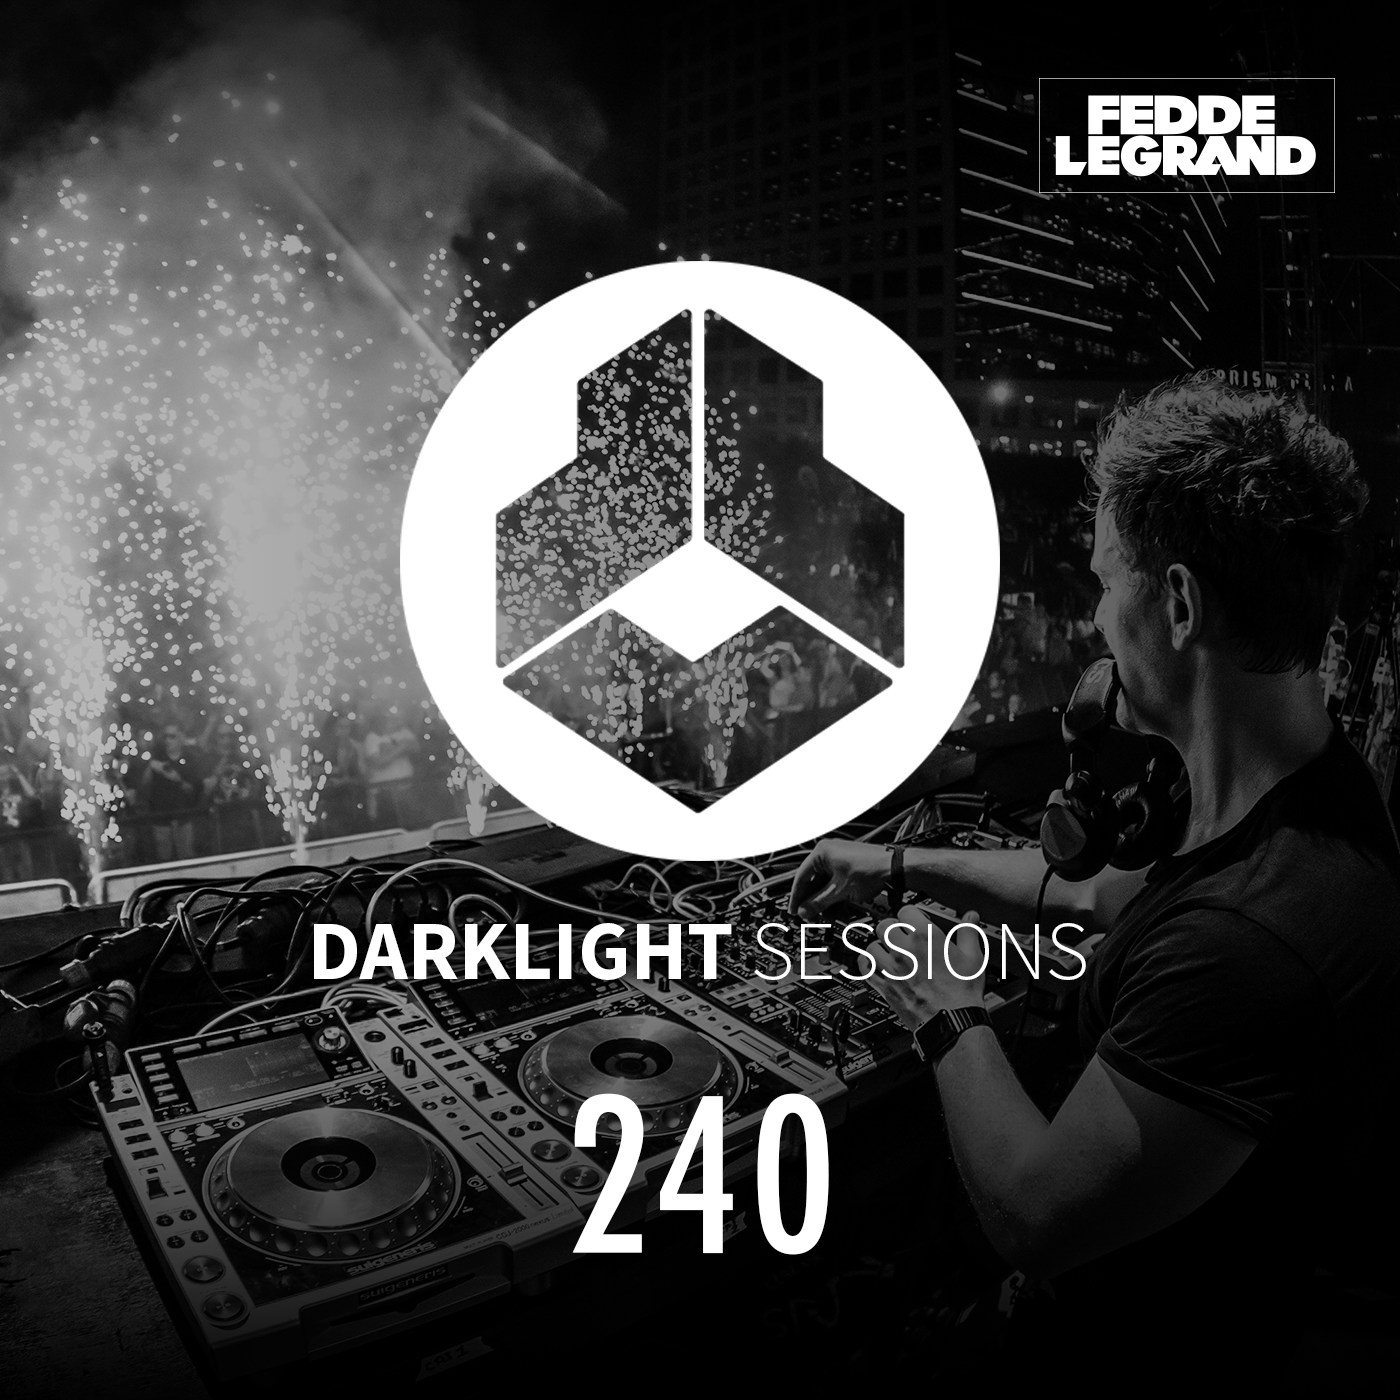 Darklight Sessions 240